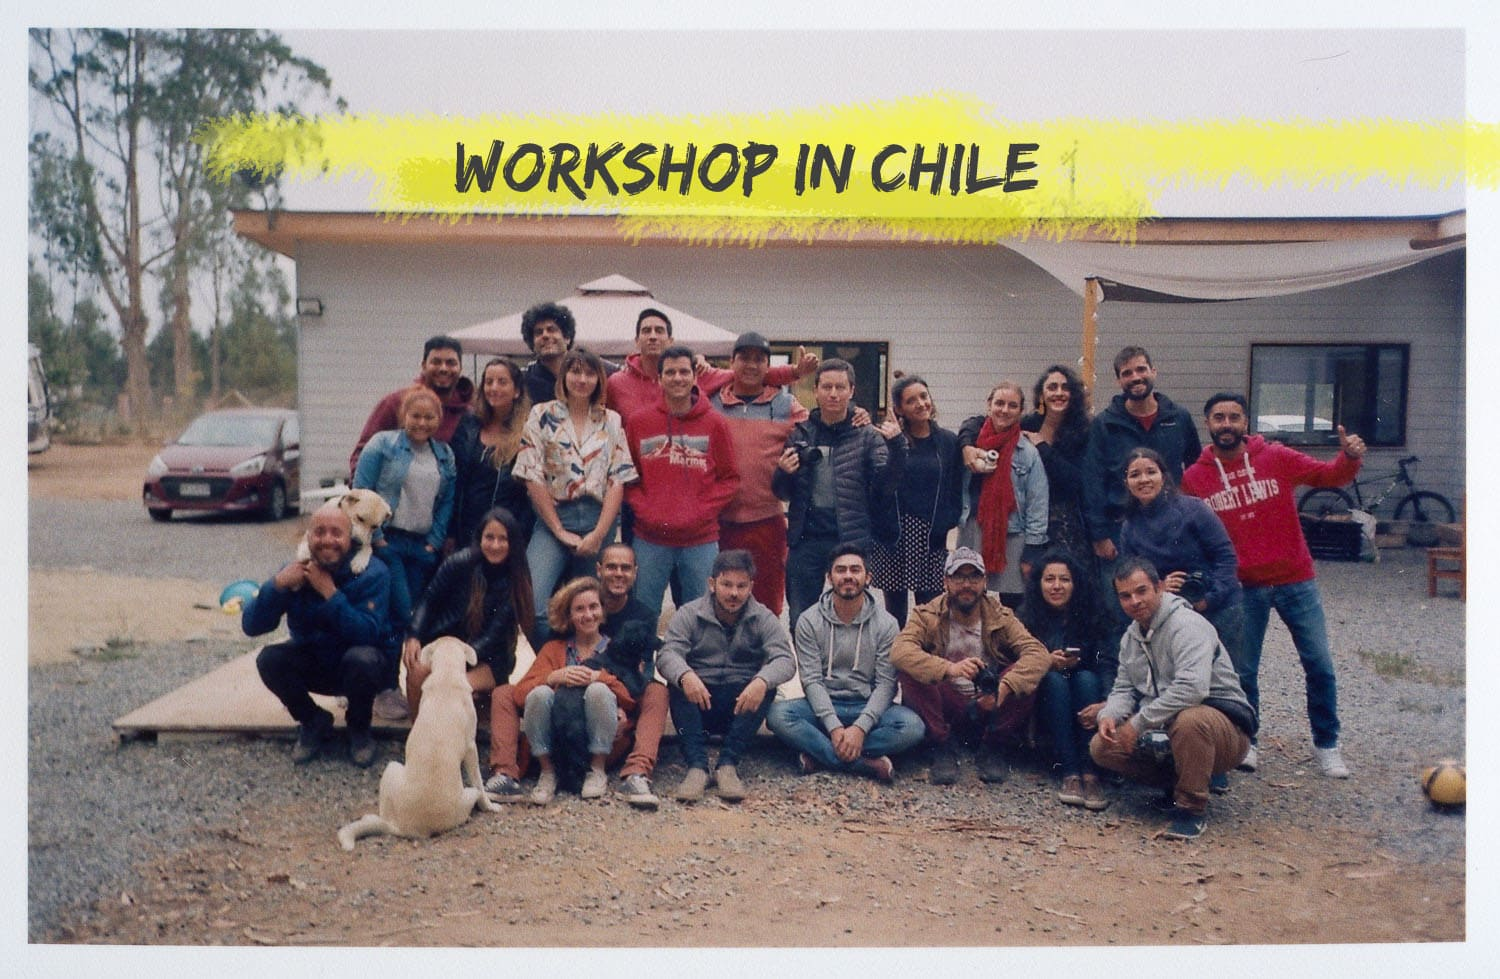 portrait group shot of the chilean workshop